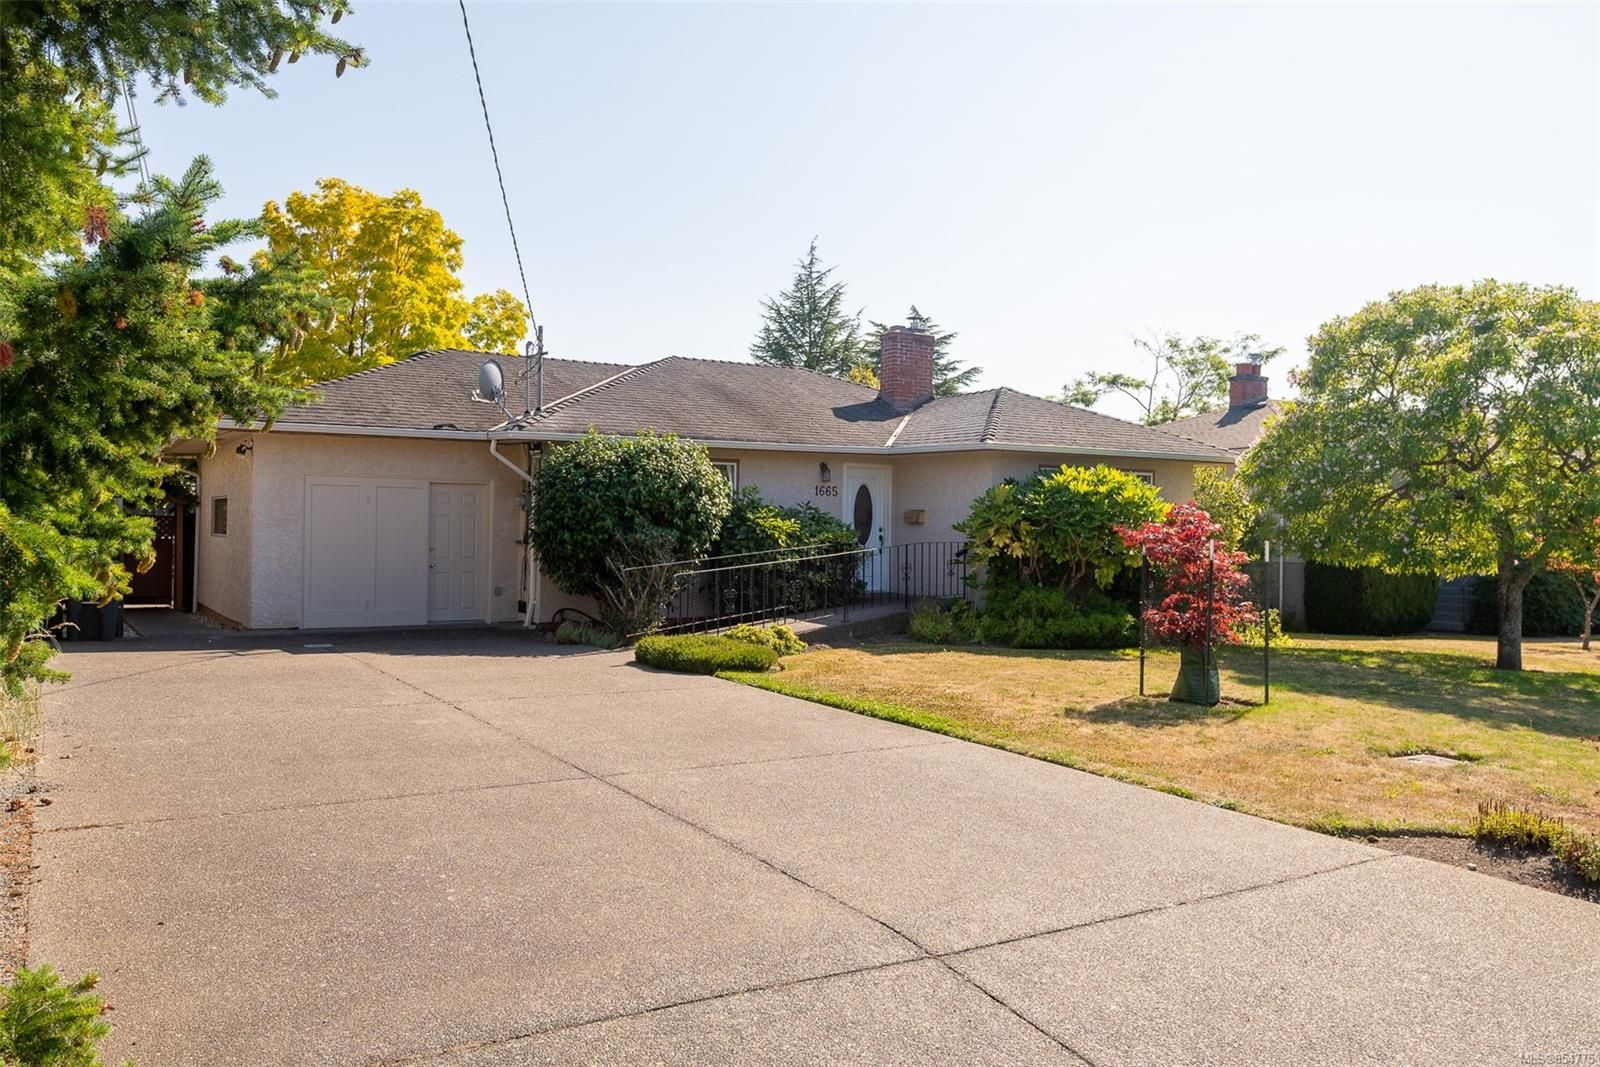 Main Photo: 1665 Sheridan Ave in : SE Mt Tolmie House for sale (Saanich East)  : MLS®# 854775